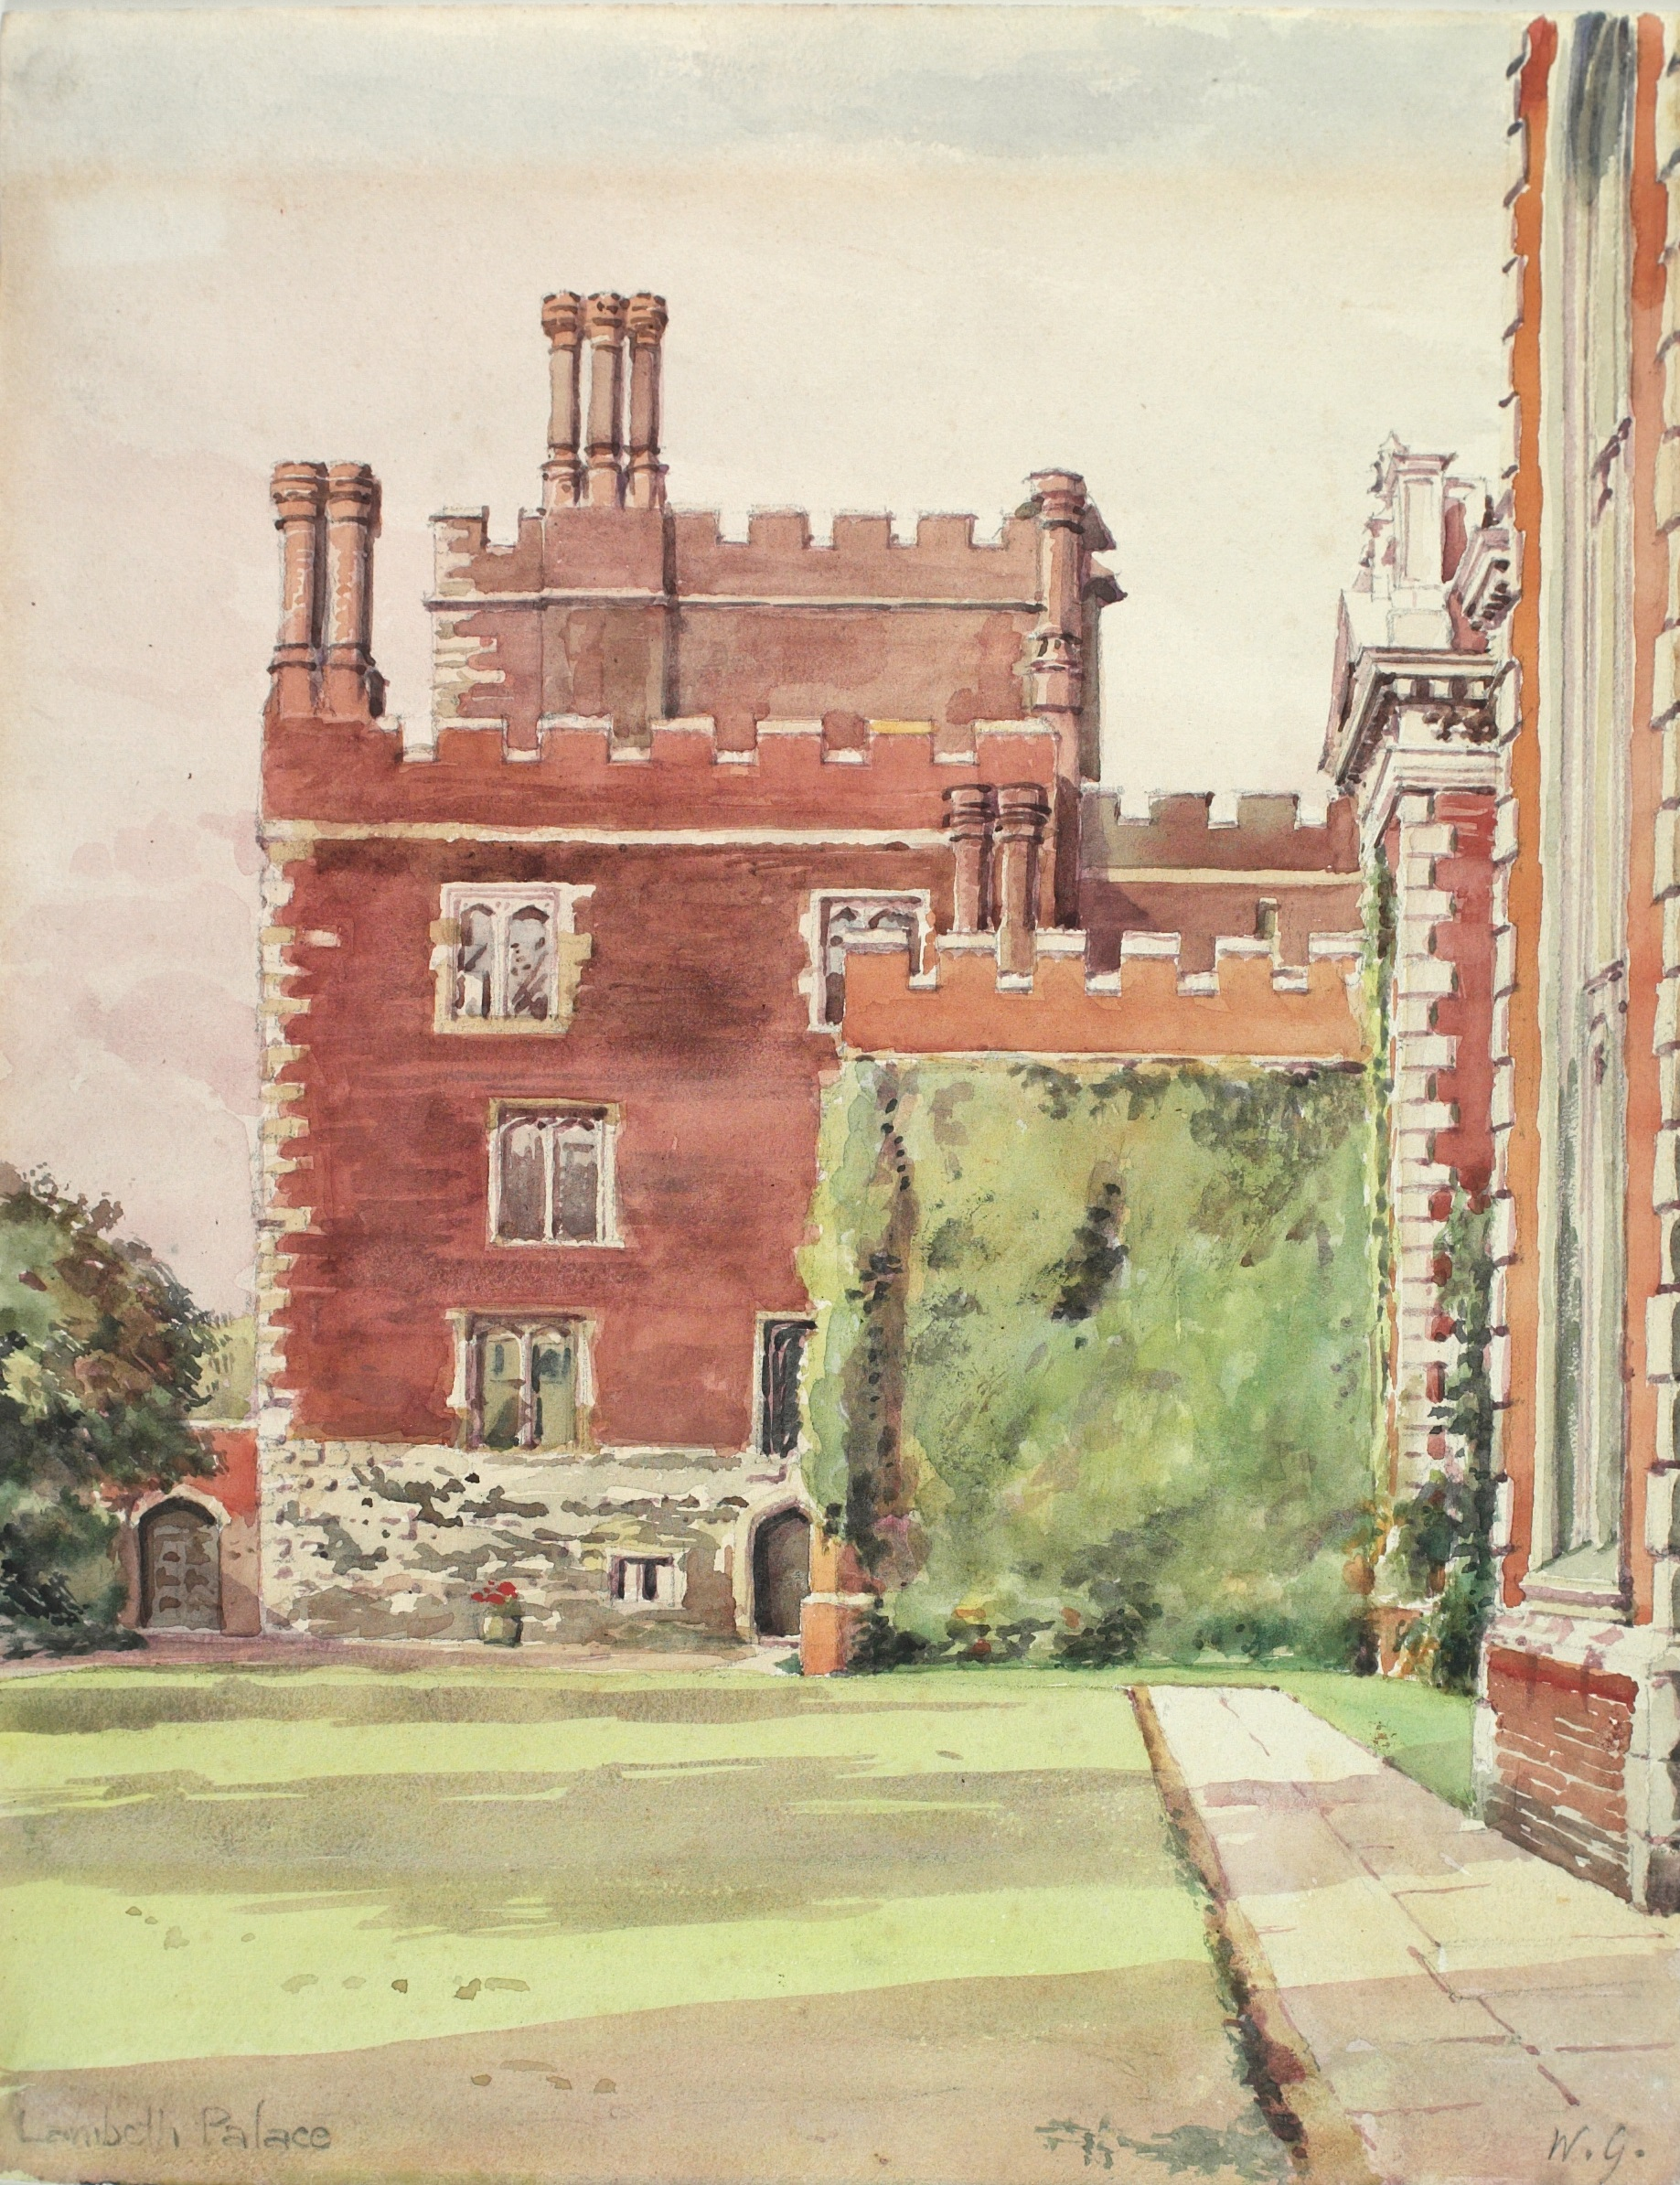 Print showing Lambeth Palace and gardens (Prints PYT 0032)